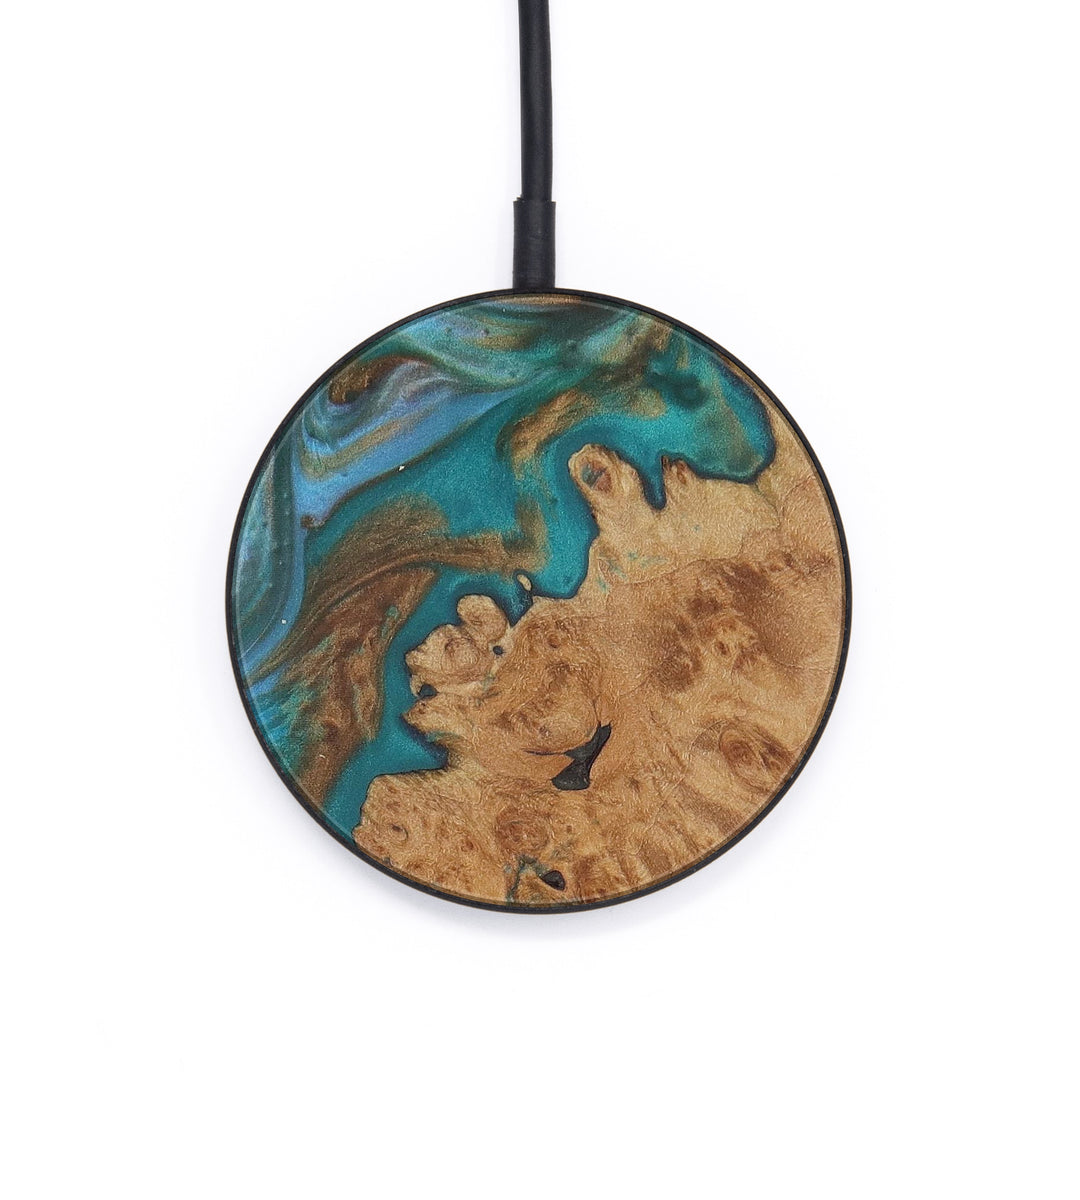 Circle Wood+Resin Wireless Charger - Quintilla (Teal & Gold, 408616)